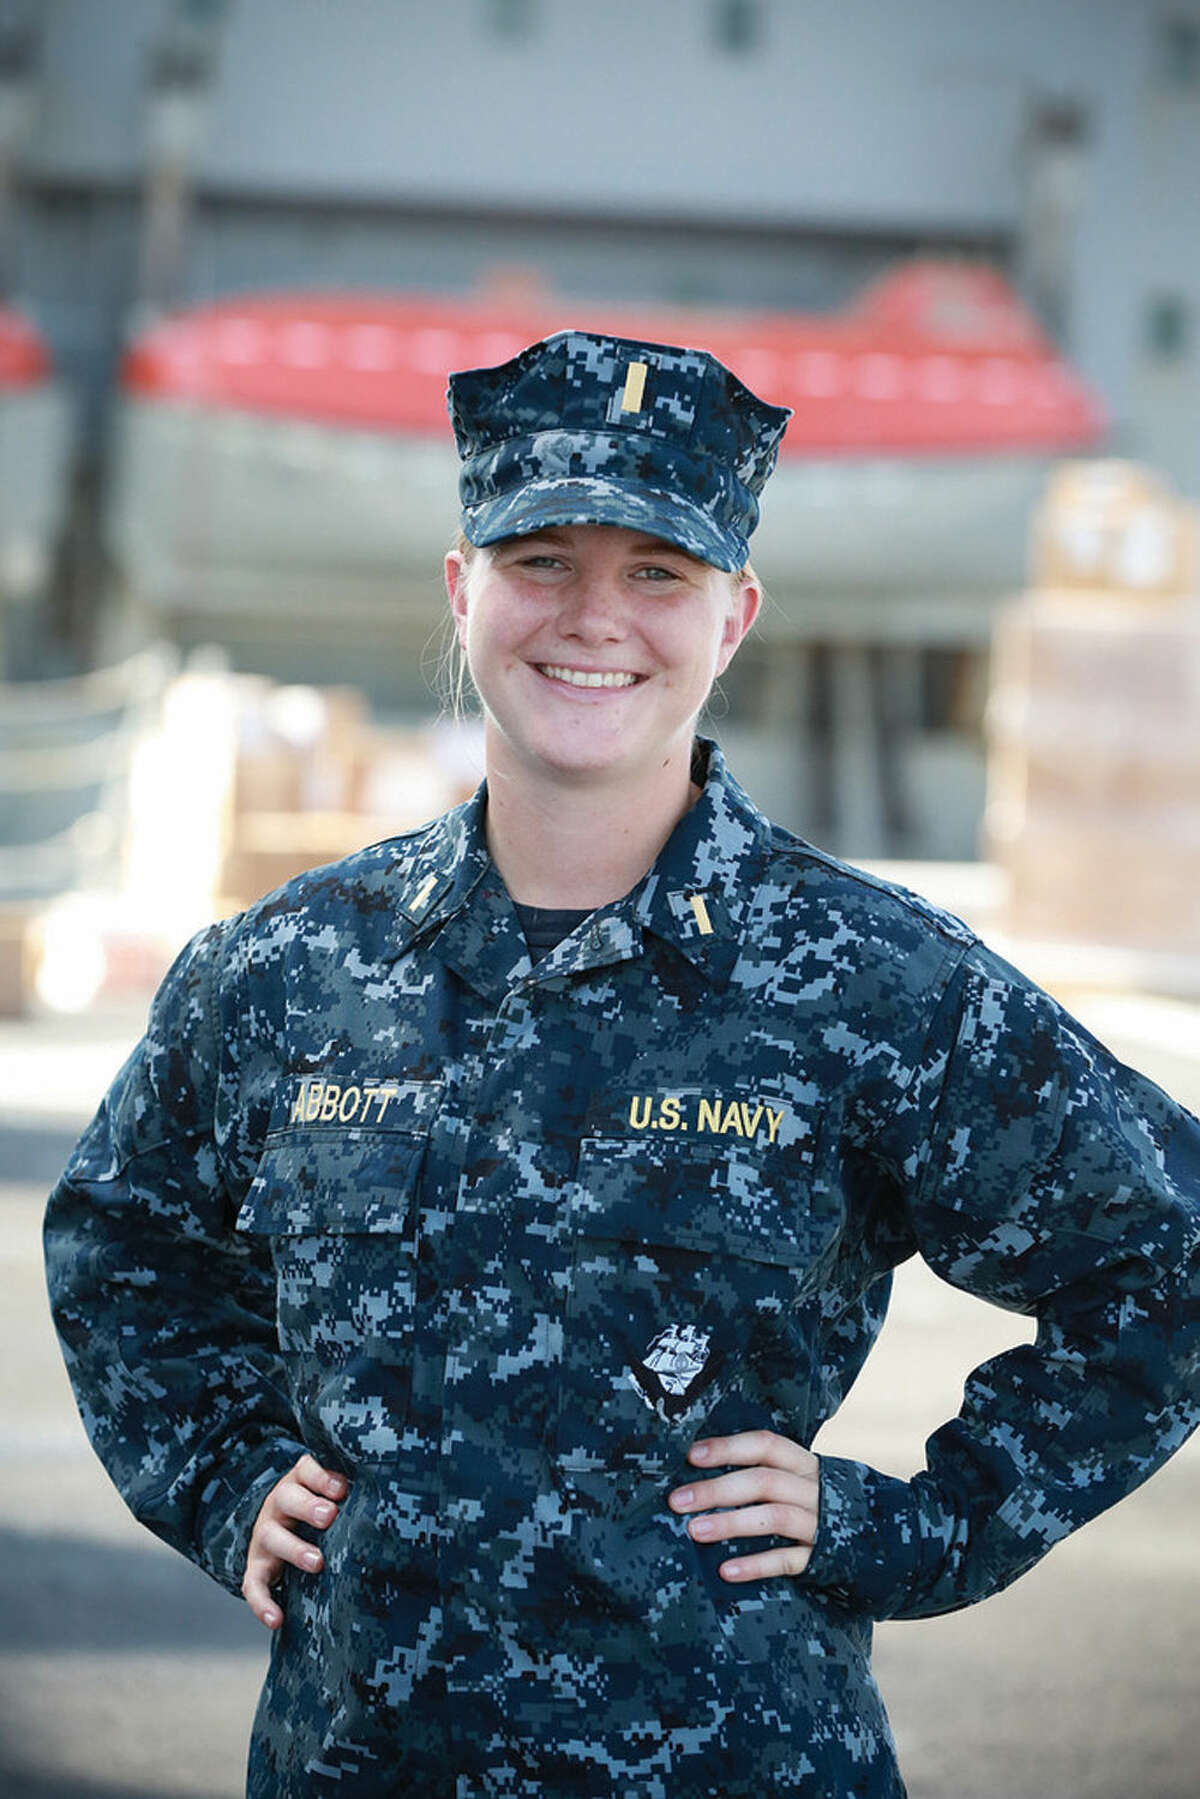 Jennifer Abbott,, a former Wilton High School swimming champ, is now with the U.S. Navy aboard the USSSomerset.